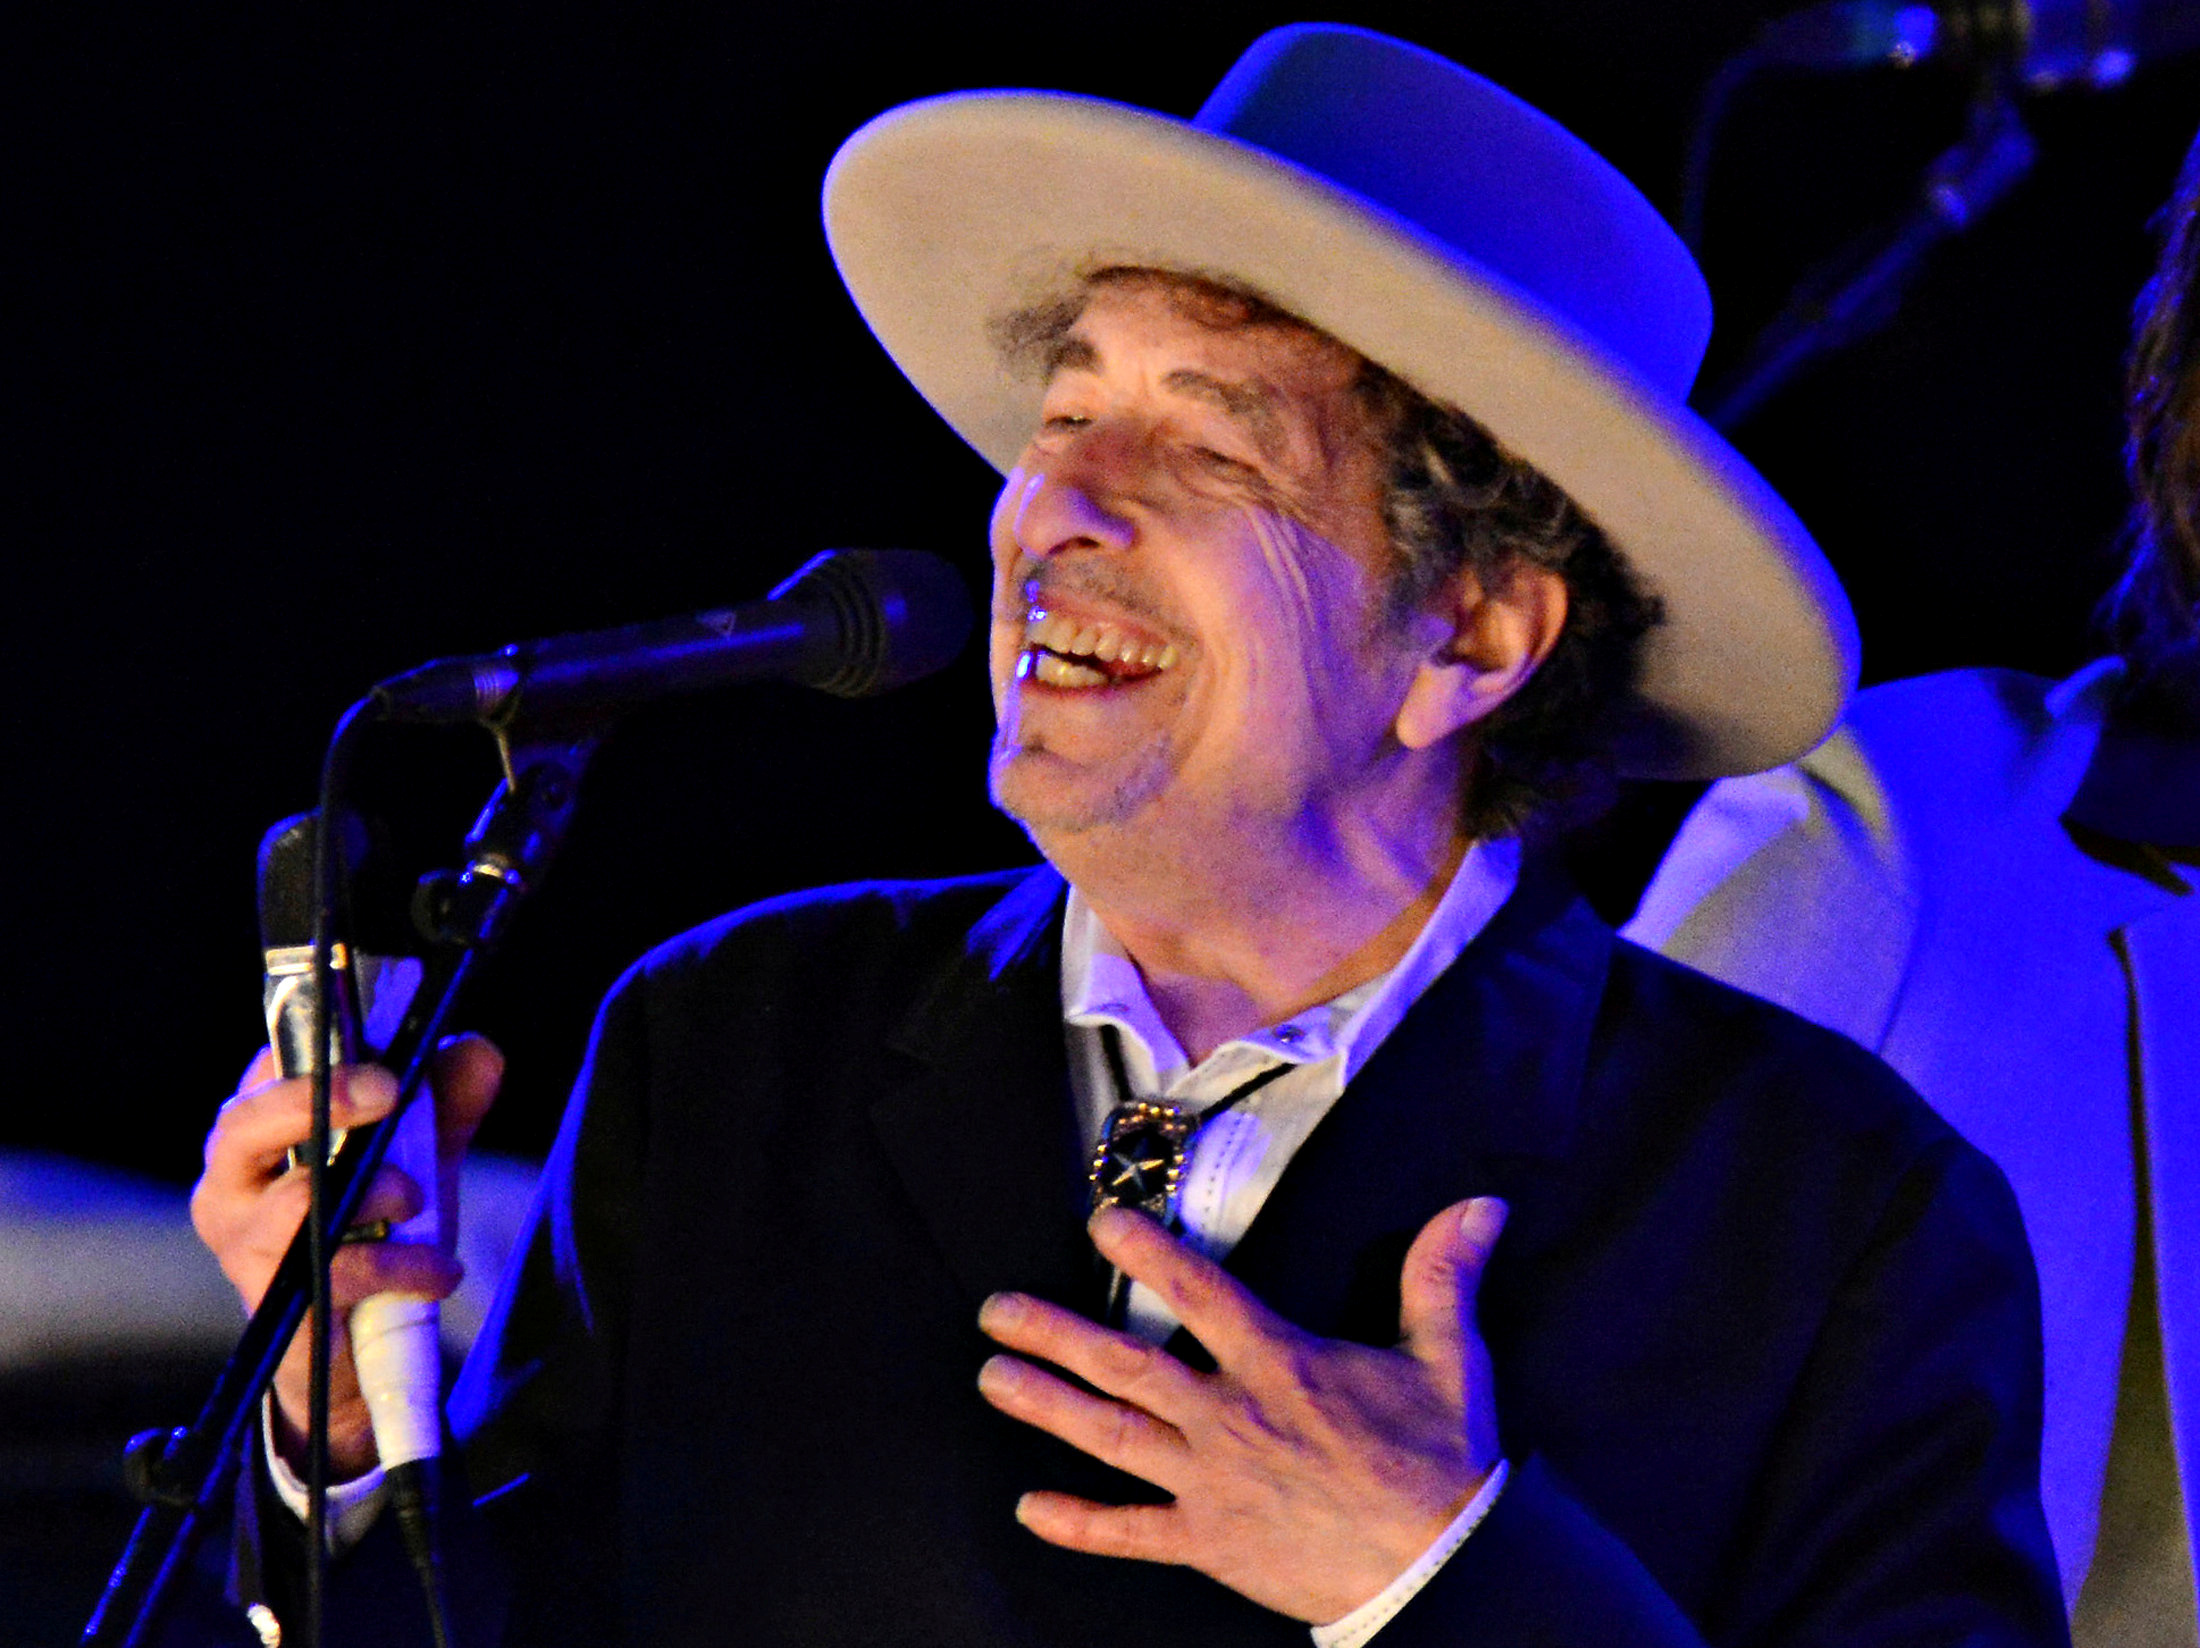 Bob Dylan's website scrubs mention of winning Nobel Prize in Literature